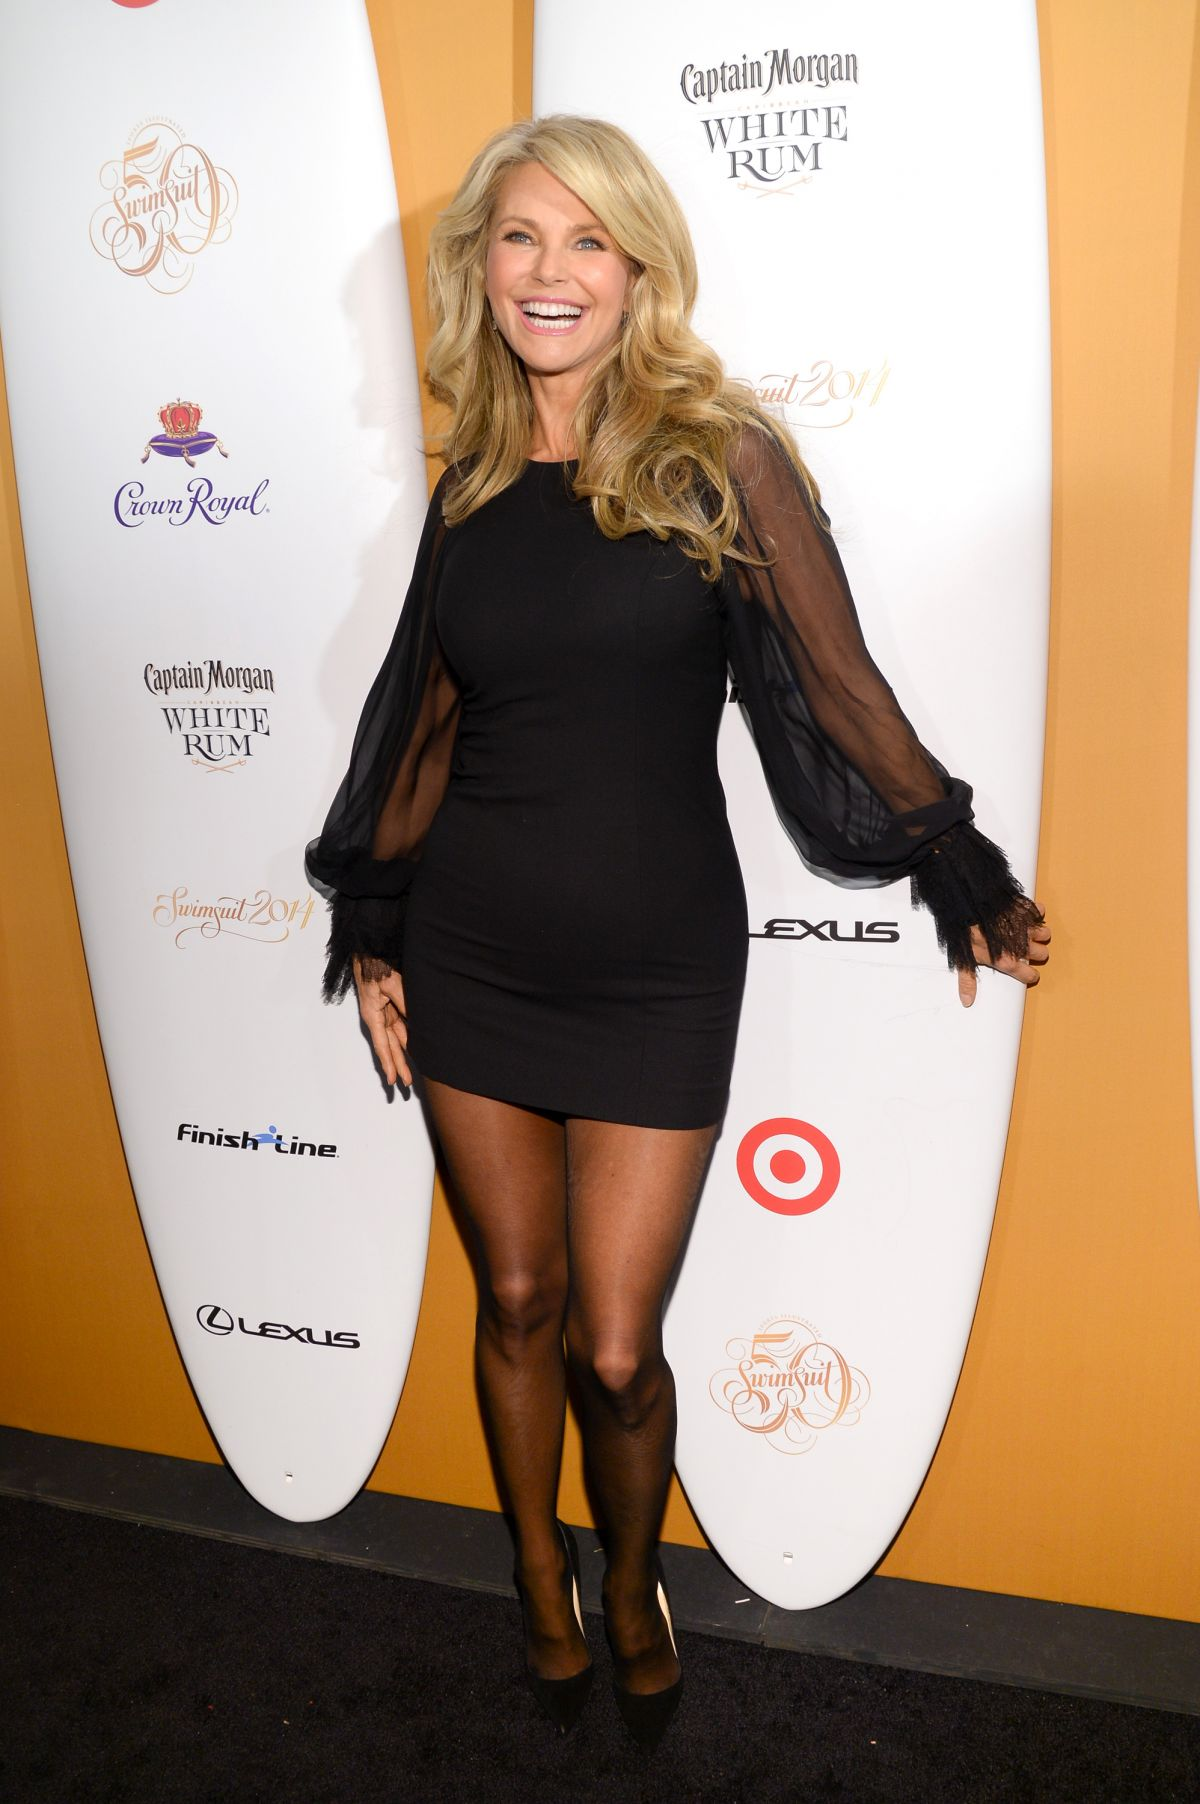 CHRISTIE BRINKLEY at Sports Illustrated Swimsuit 50 Years of Swim Celebration in New York